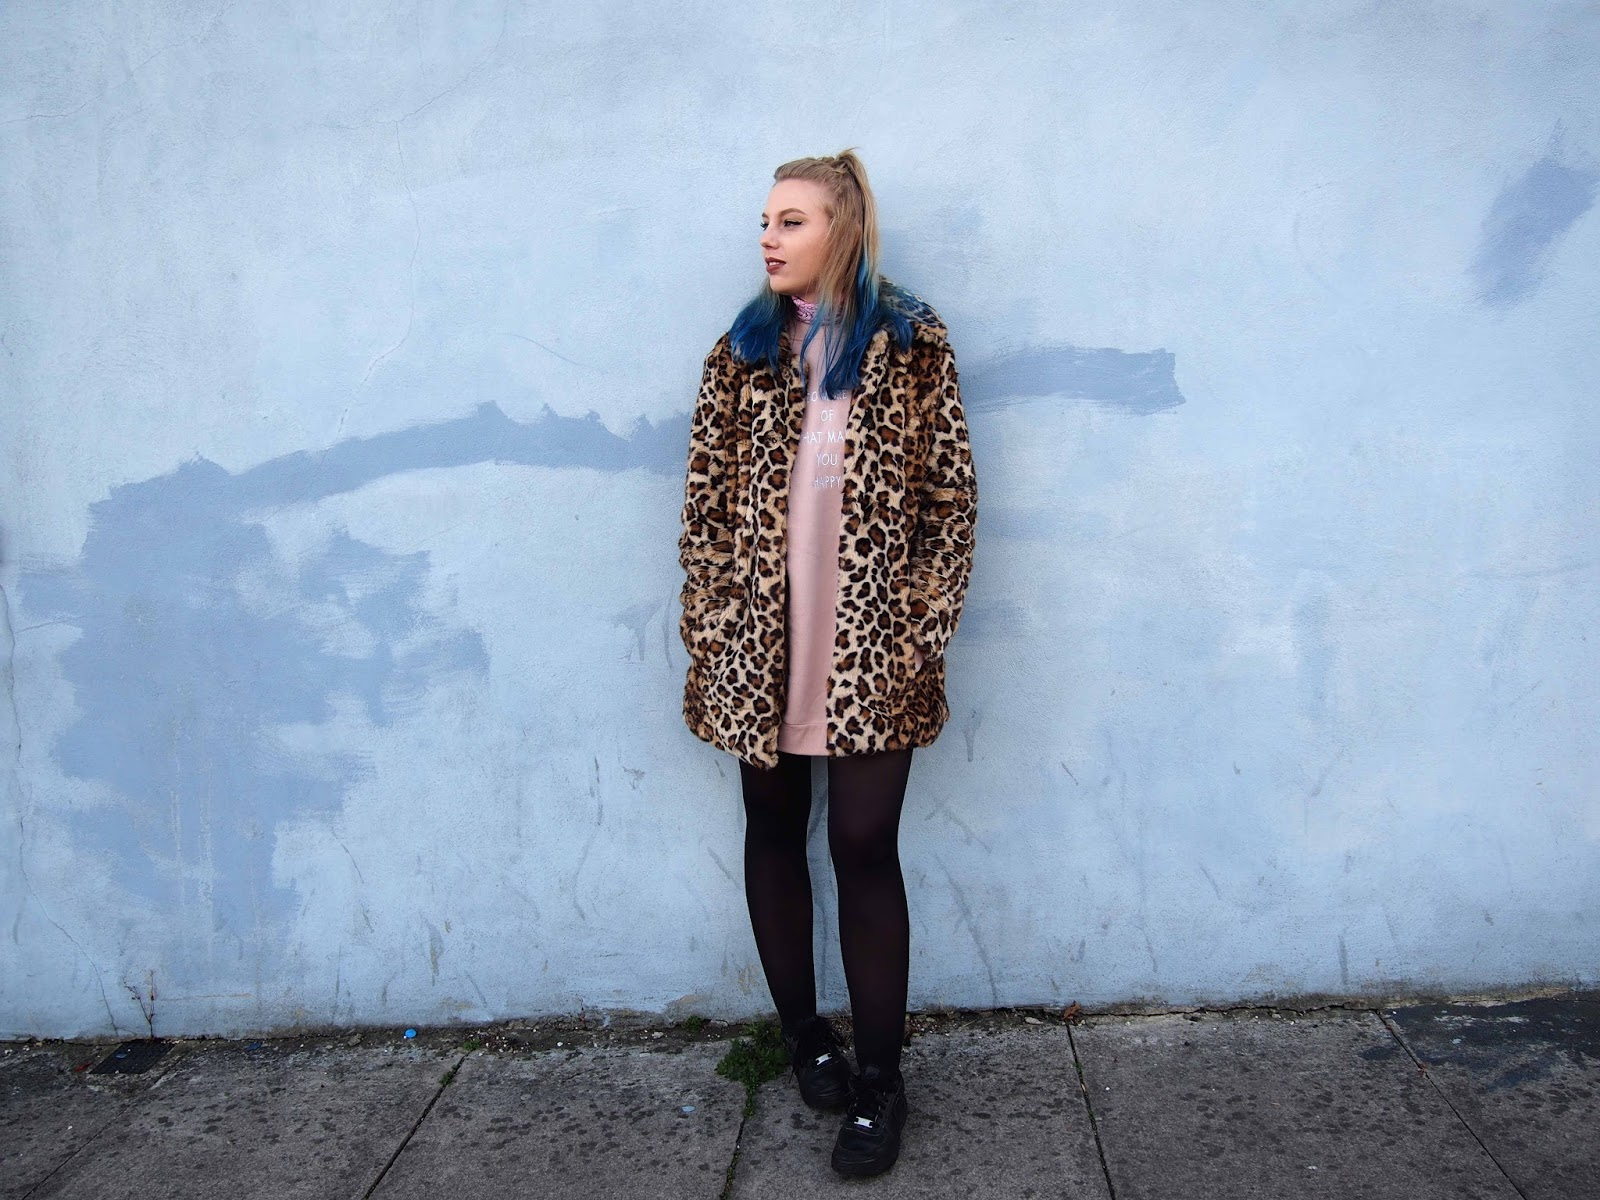 autumn grunge outfit, oversized dusty pink primark sweater jumper, leopard faux fur coat, bandana neck tie, autumn witner fashion style blogger ootd inspiration